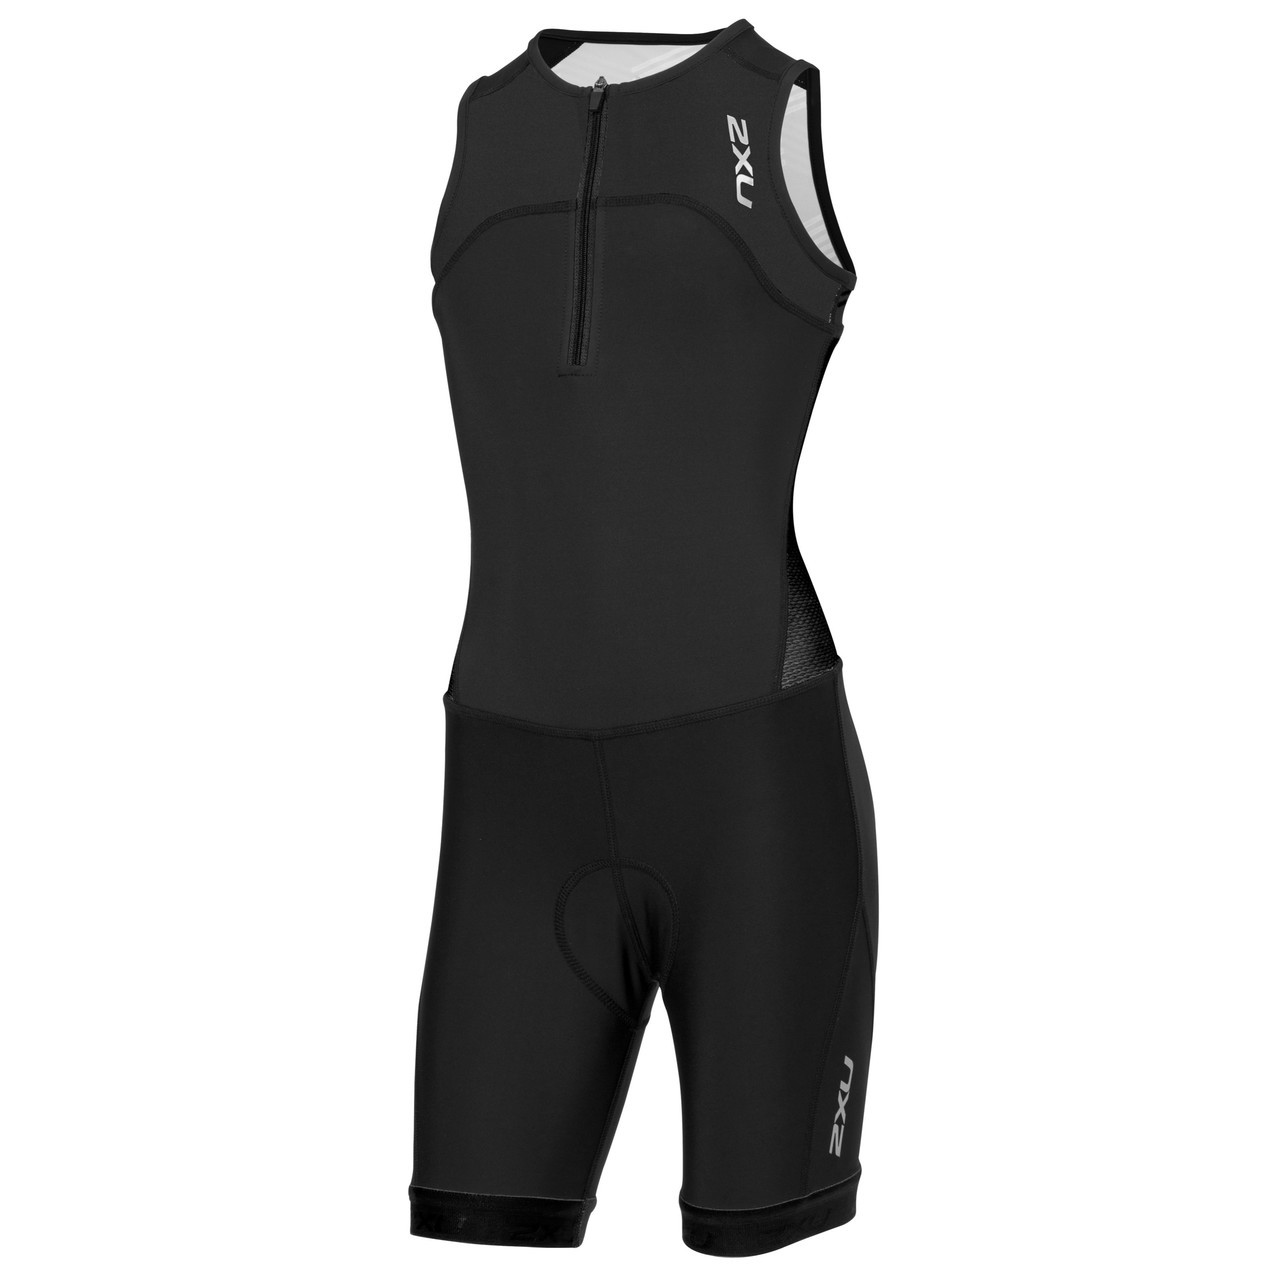 2XU Youth Active Tri Suit - 2018 price